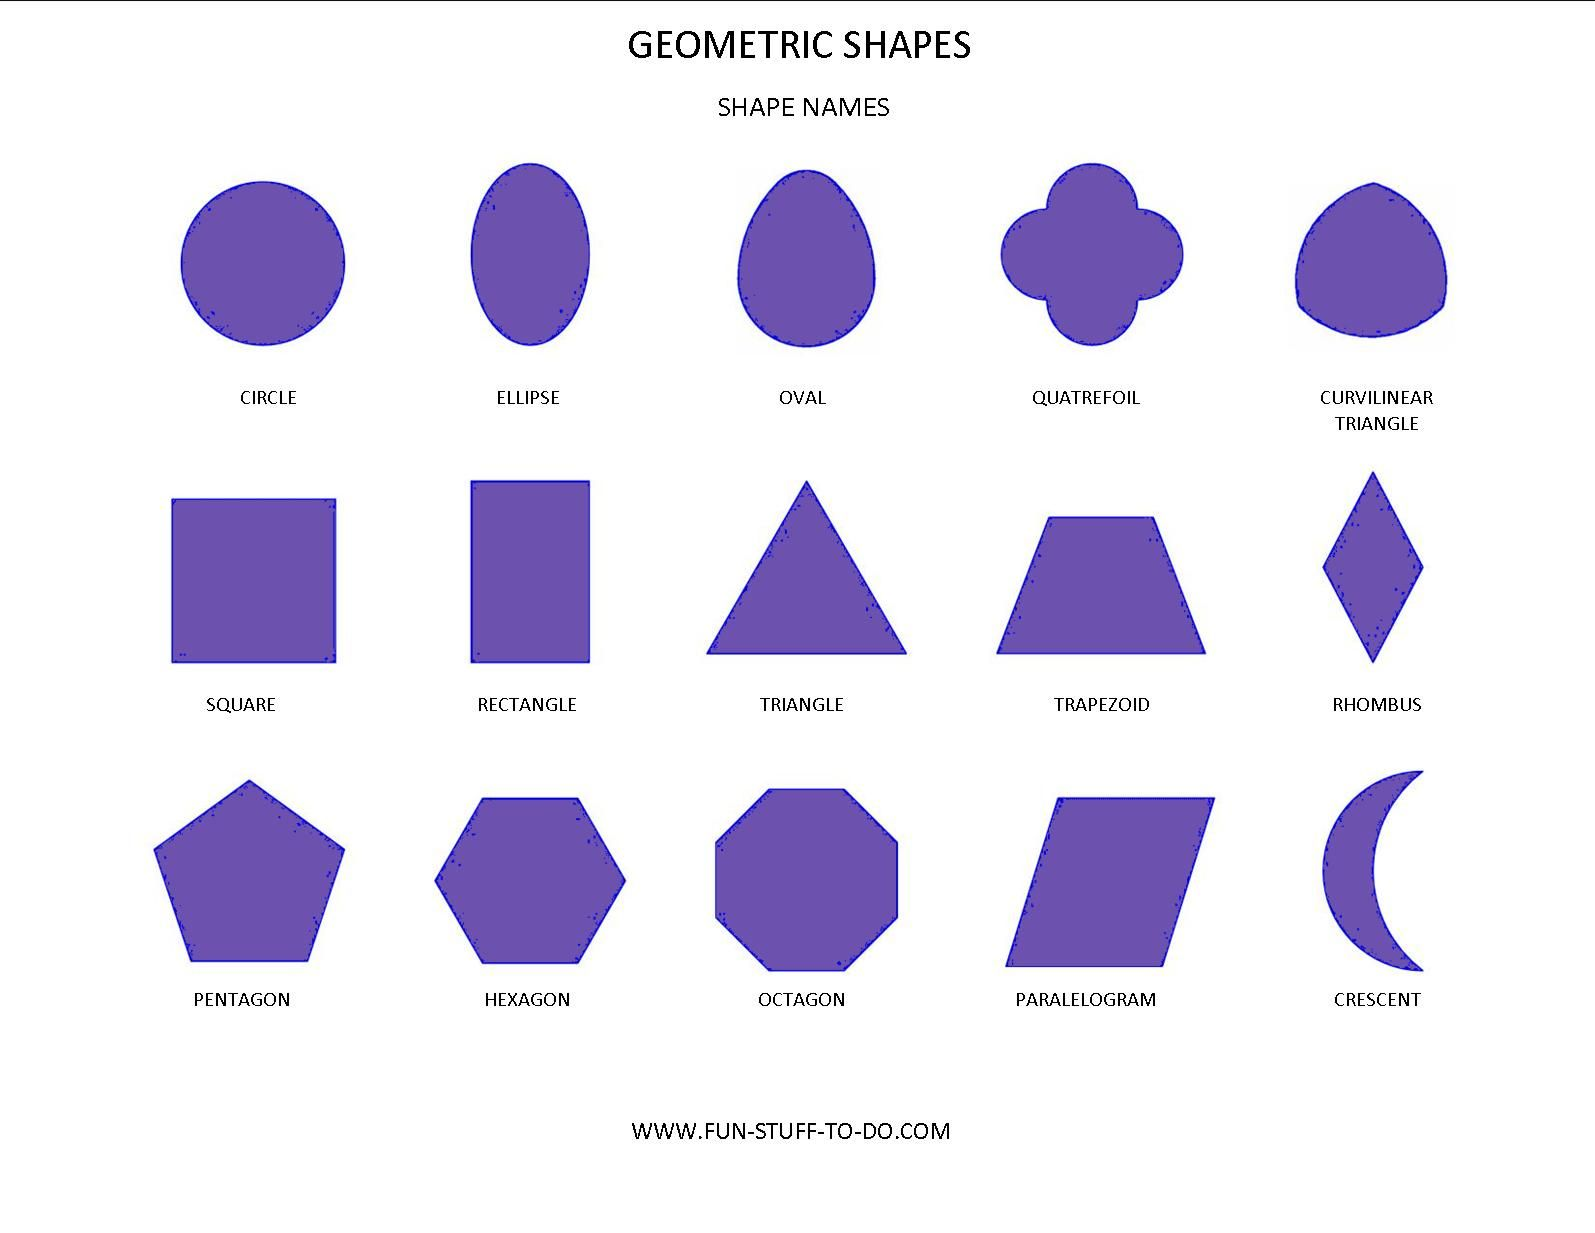 Geometric Shapes And Names What Is Most Interesting To Me Is Finding These Shapes In Nature Geometric Shapes Names Shape Names Shapes Worksheets [ 1233 x 1595 Pixel ]